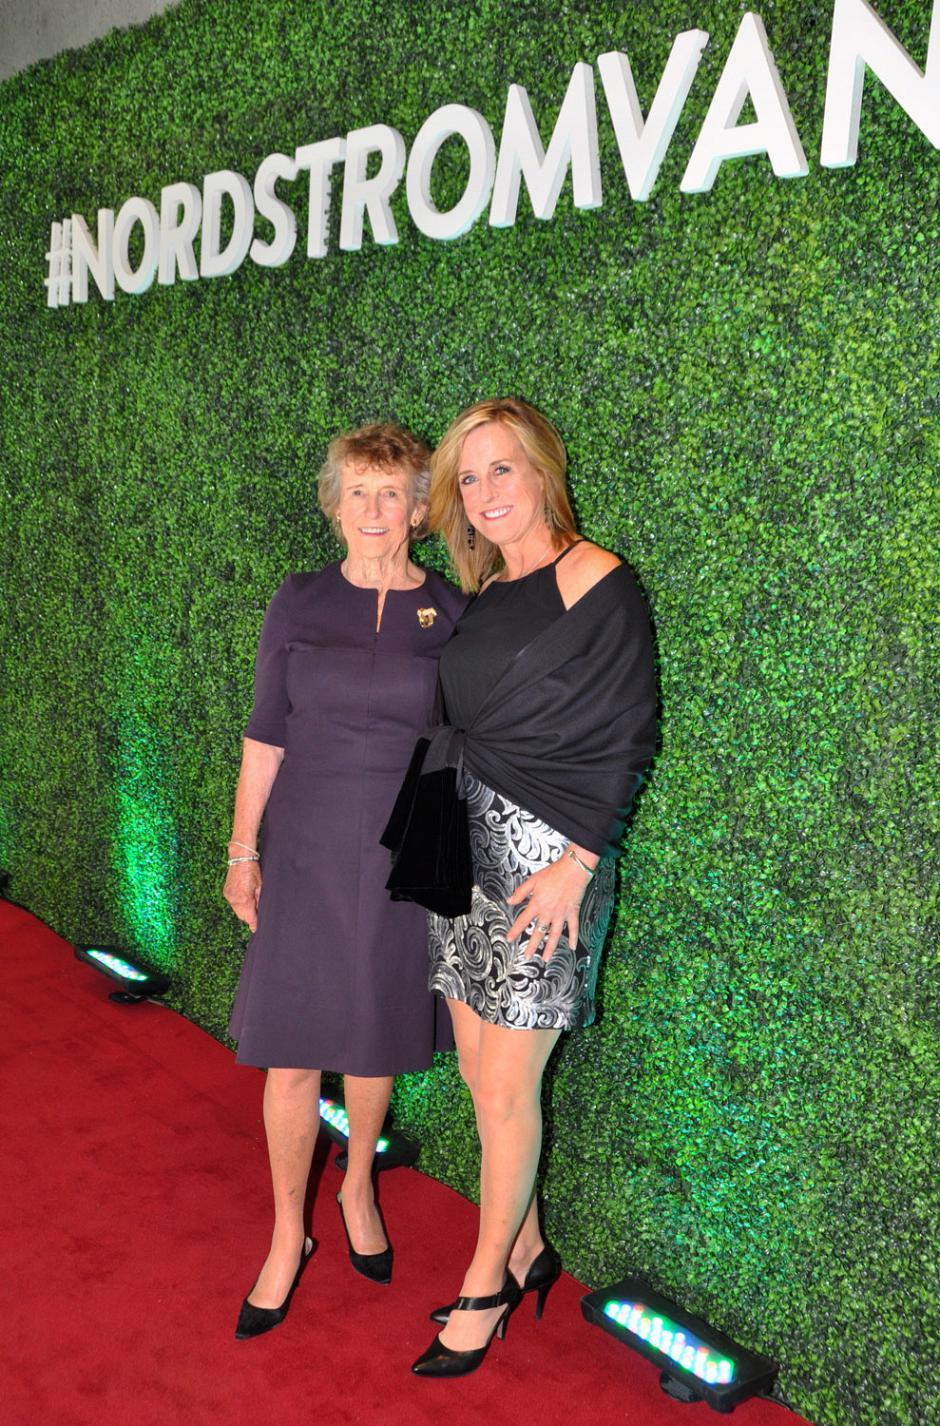 Anne Gittinger, Nordstrom co-owner/shareholder; and her daughter, Susan Dunn